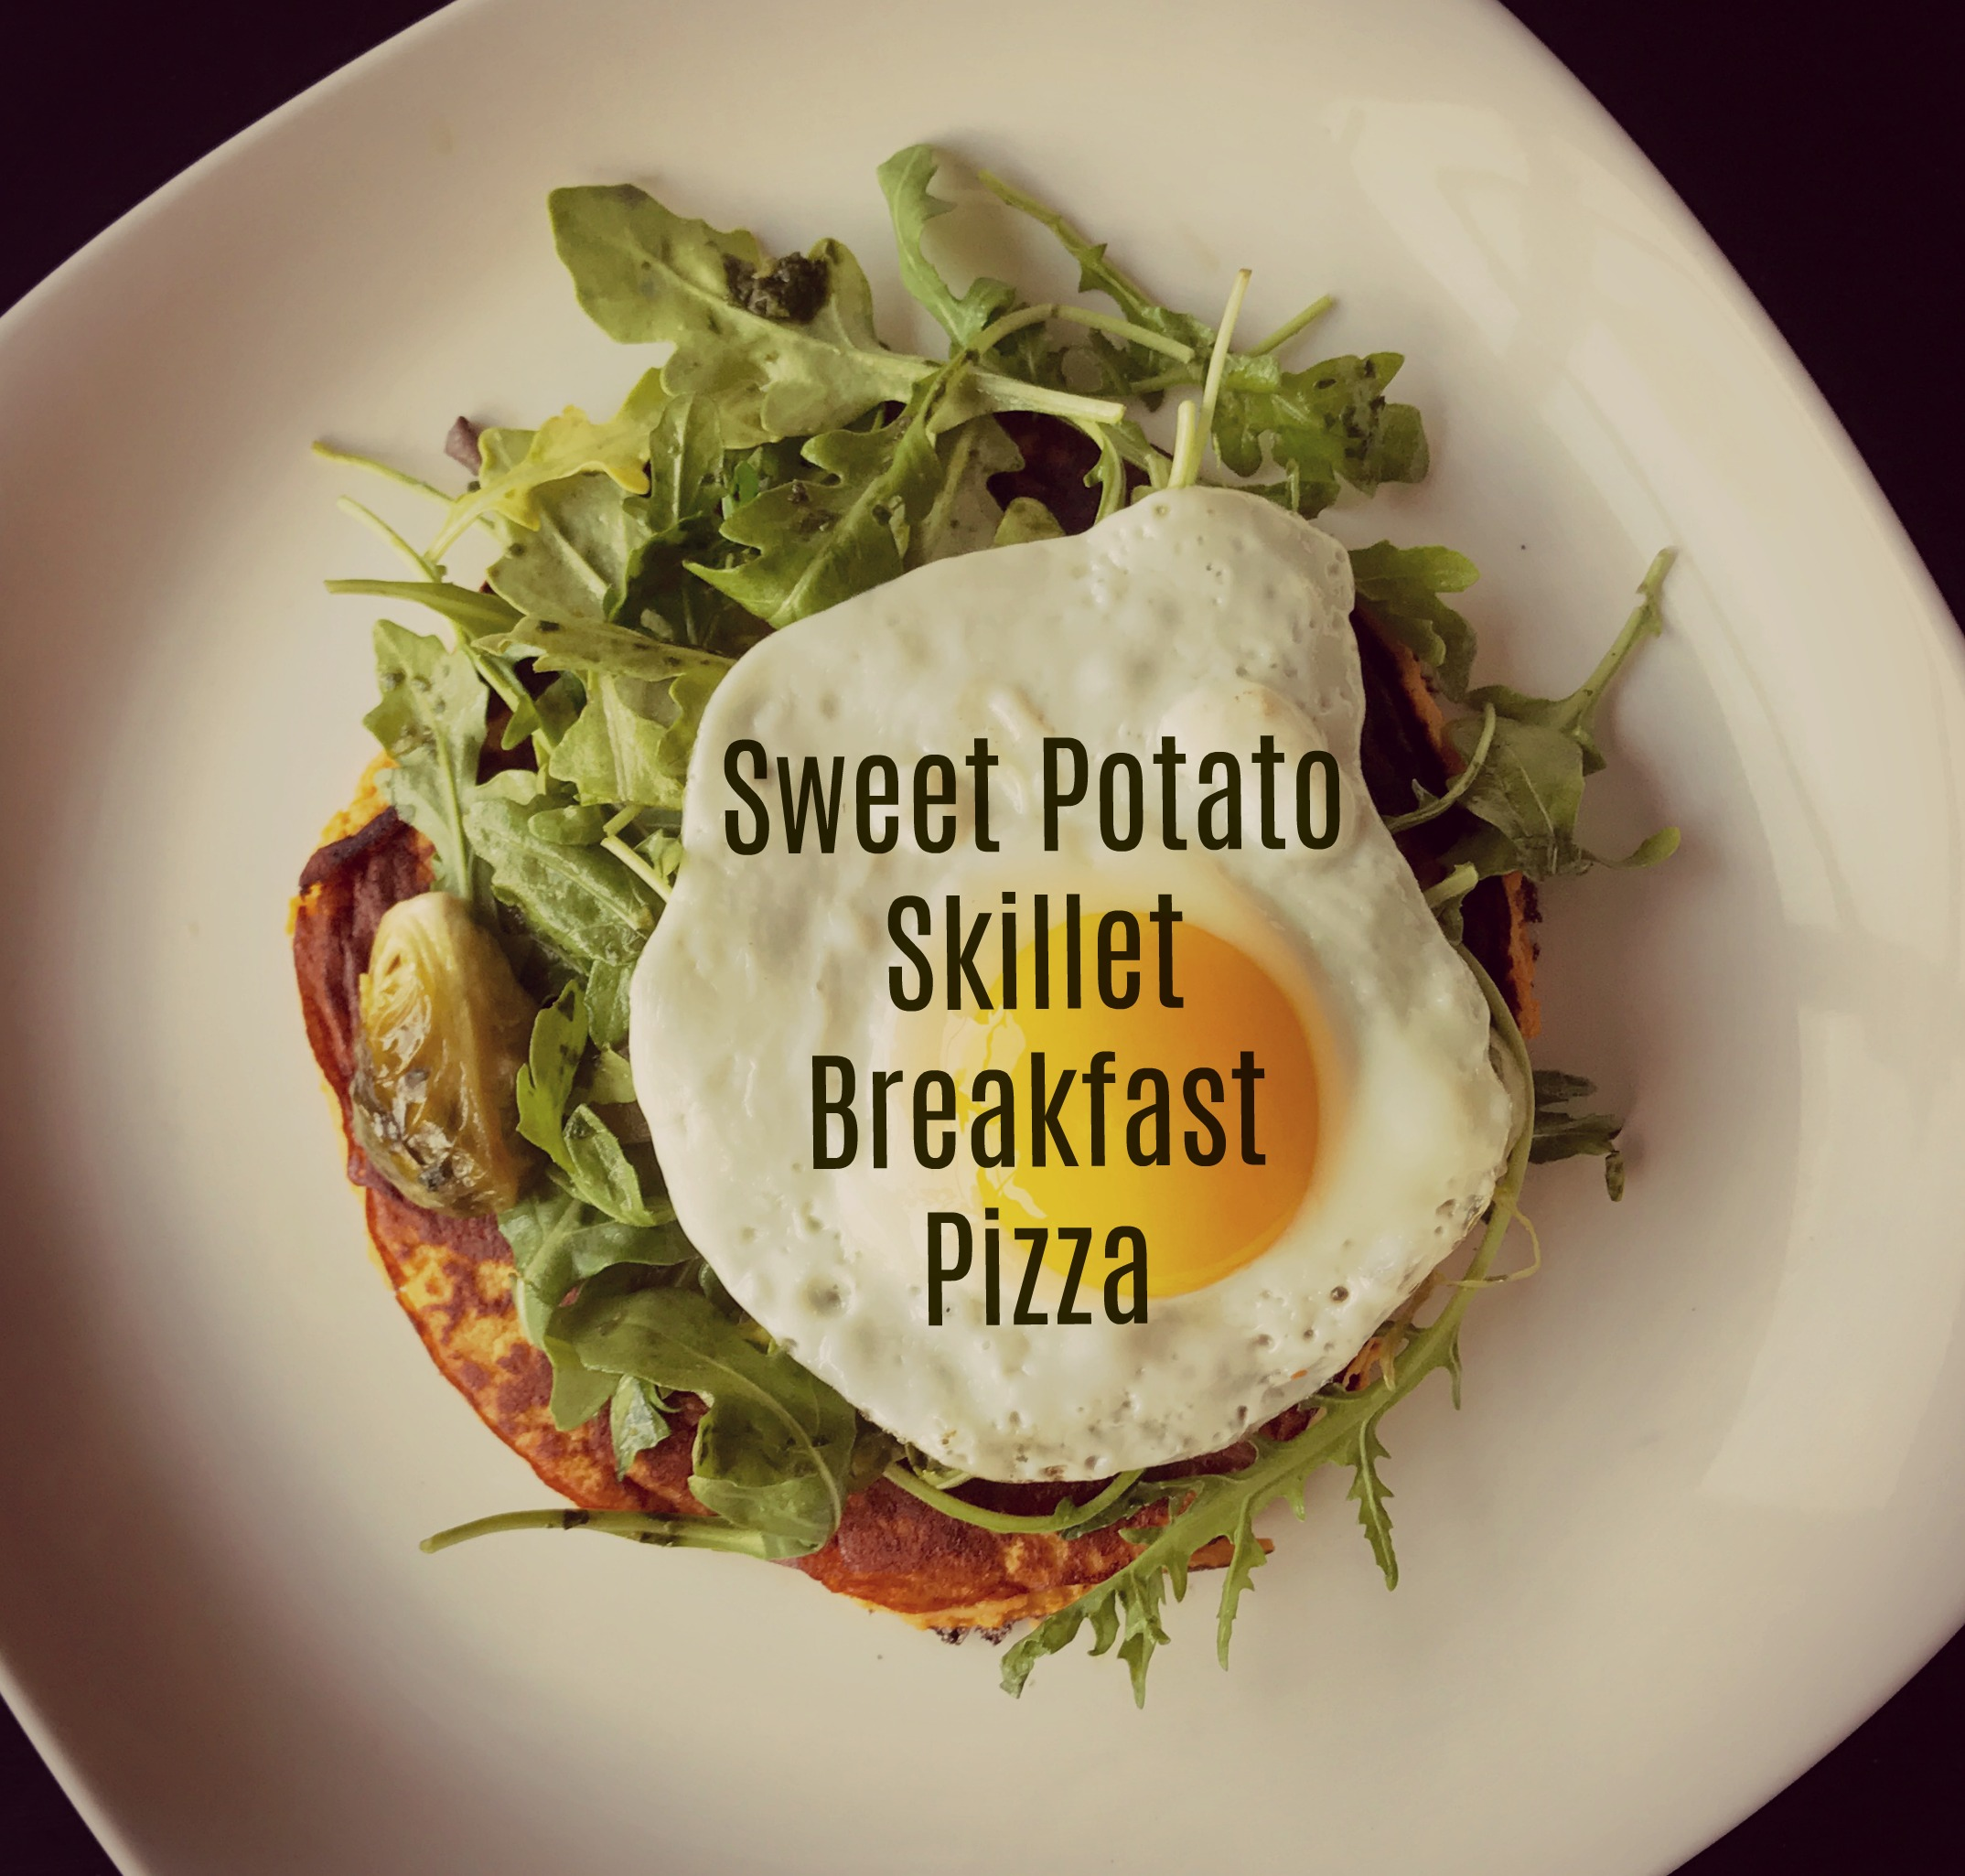 Sweet Potato Skillet Breakfast Pizza